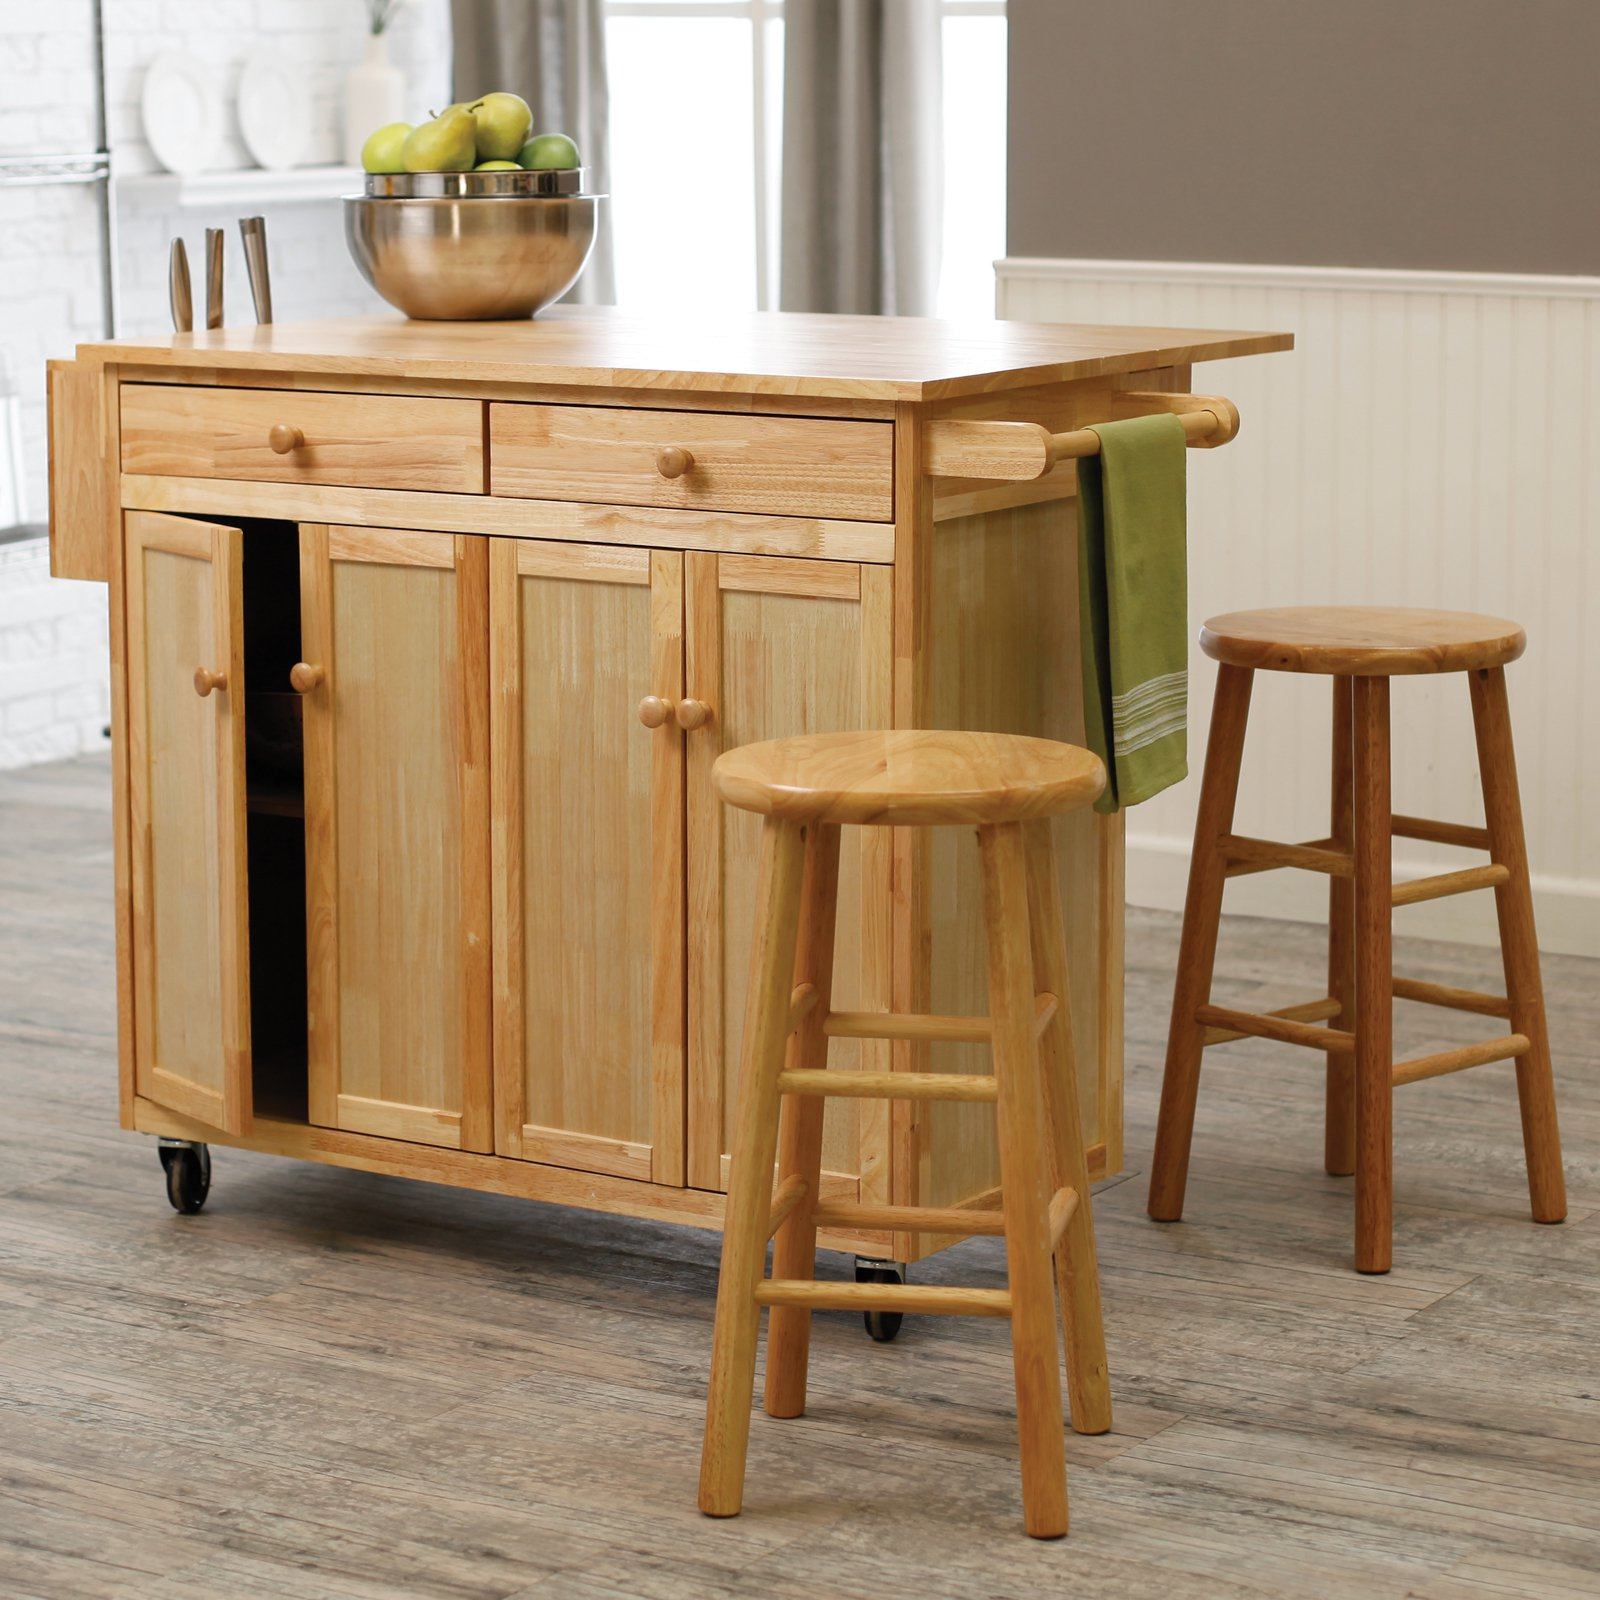 Small kitchen island on wheels – Kitchen ideas